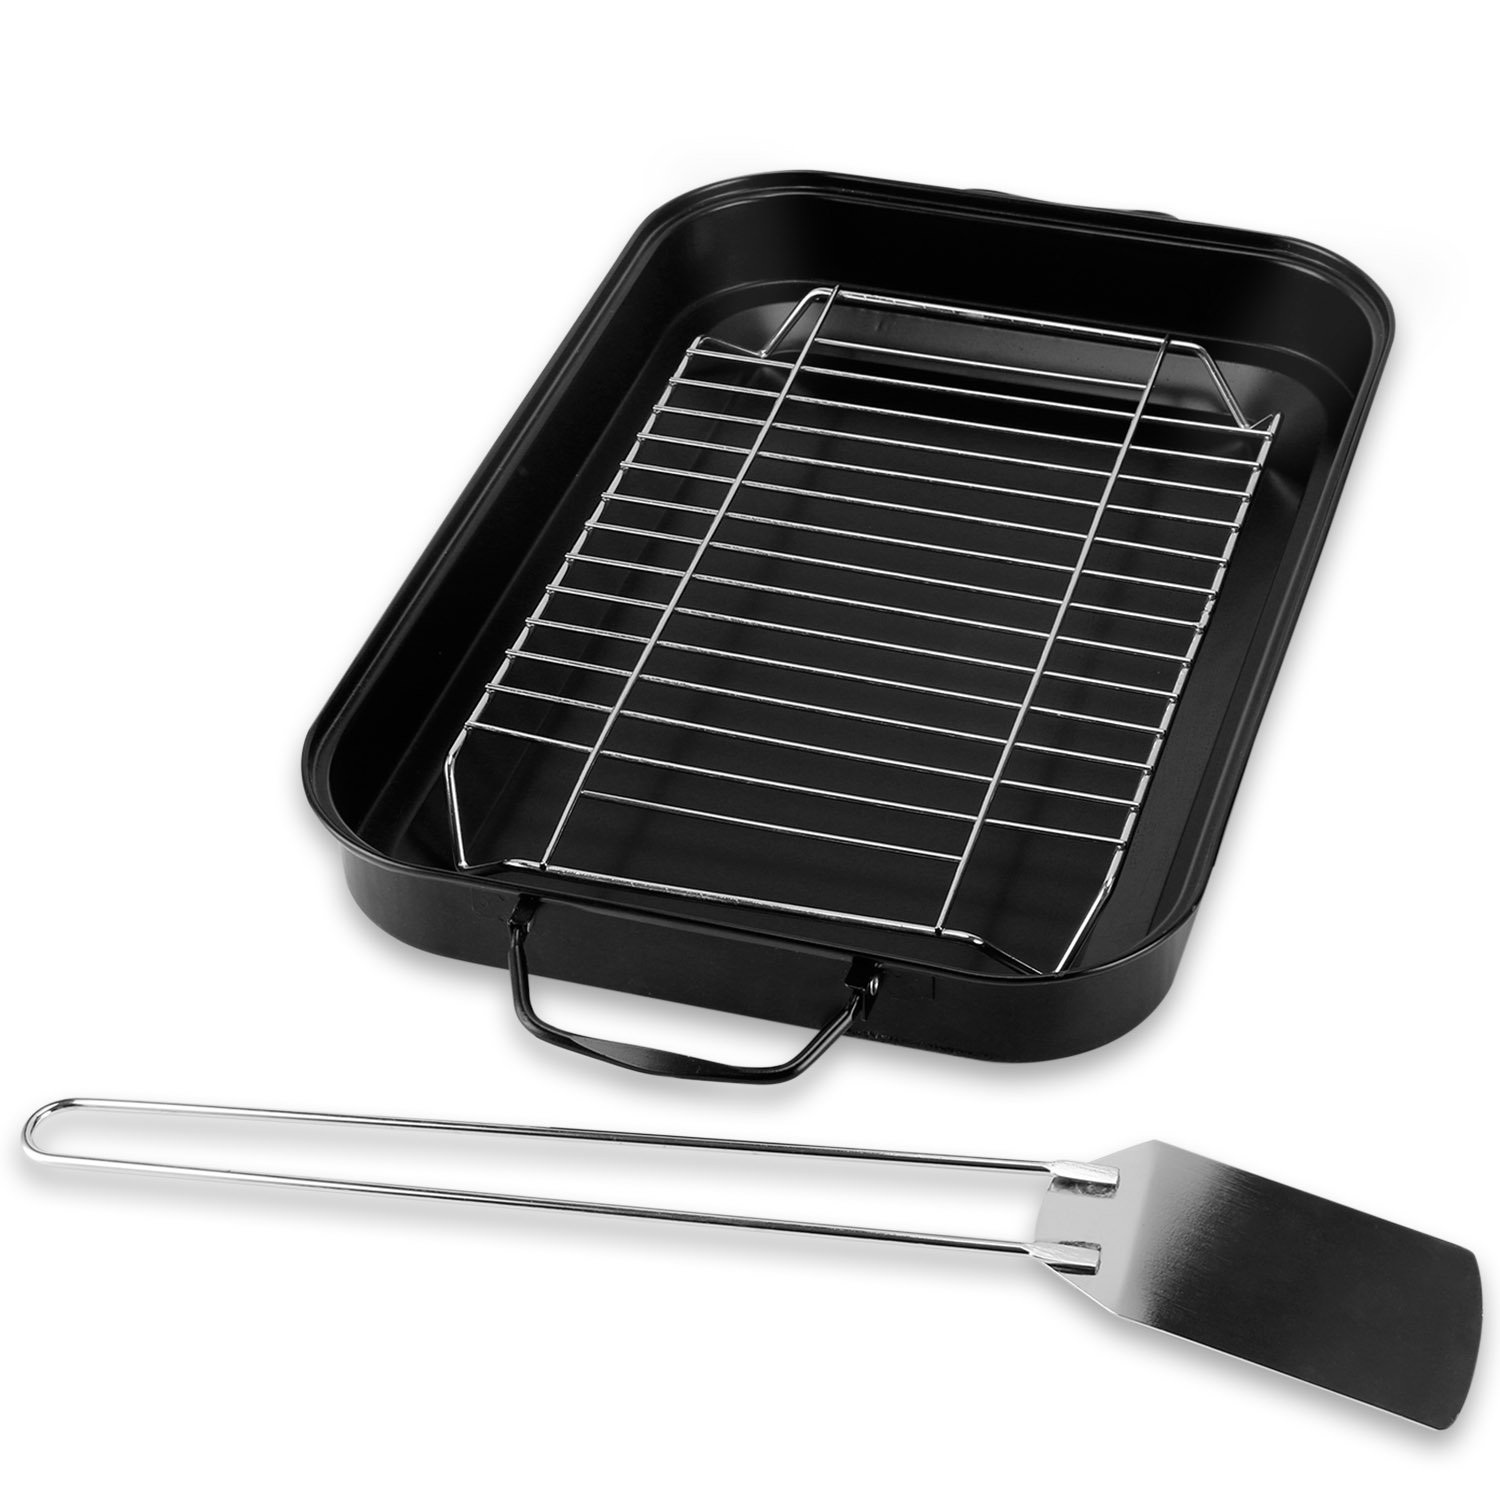 Sougem Roasting Pan with Rack,15 inch by 10 inch,Stainless Steel,Non-stick,Rectangular,Handle,with a Turner,Black.